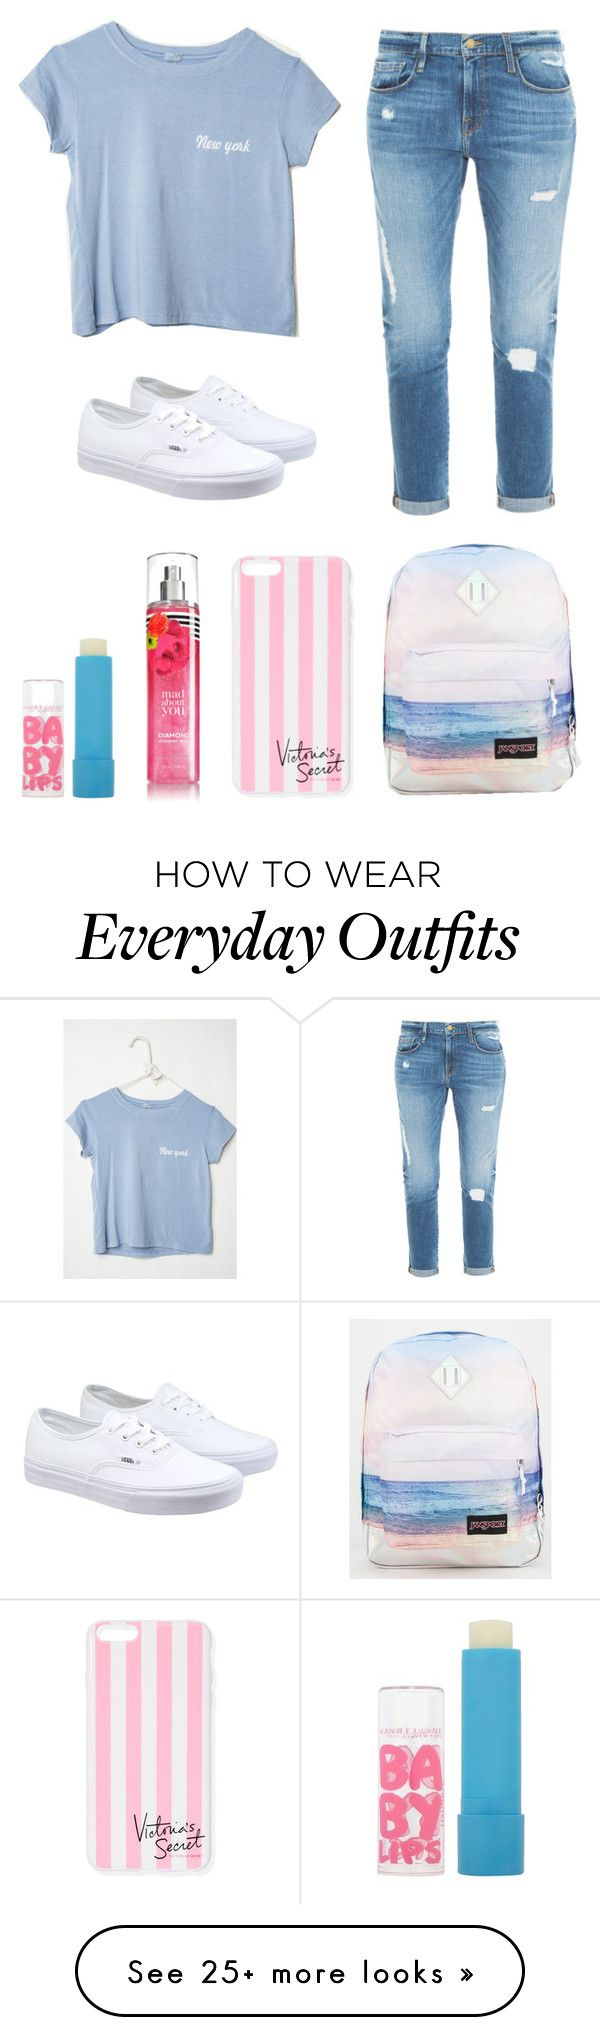 """Typical Everyday Outfit"" by gracekennedy19 on Polyvore featuring Frame Denim, Vans, JanSport, Victoria's Secret, Maybelline, women's clothing, women's fashion, women, female and woman"